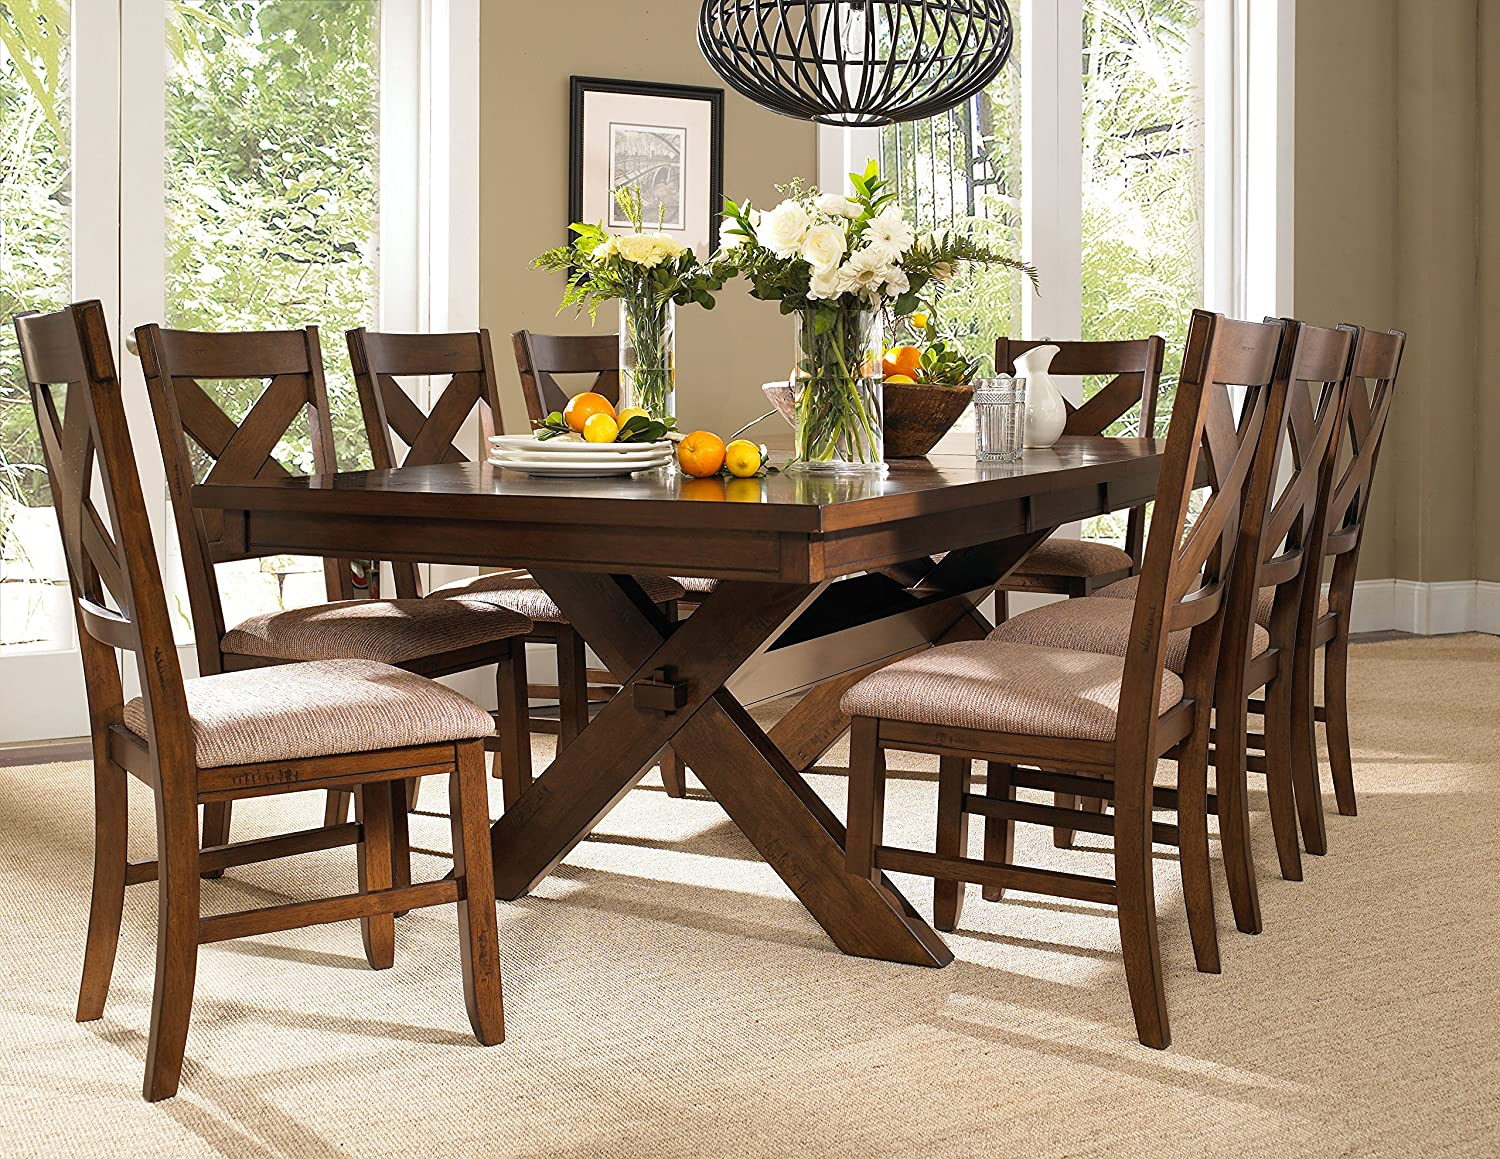 Powell 9 Piece Wooden dining set